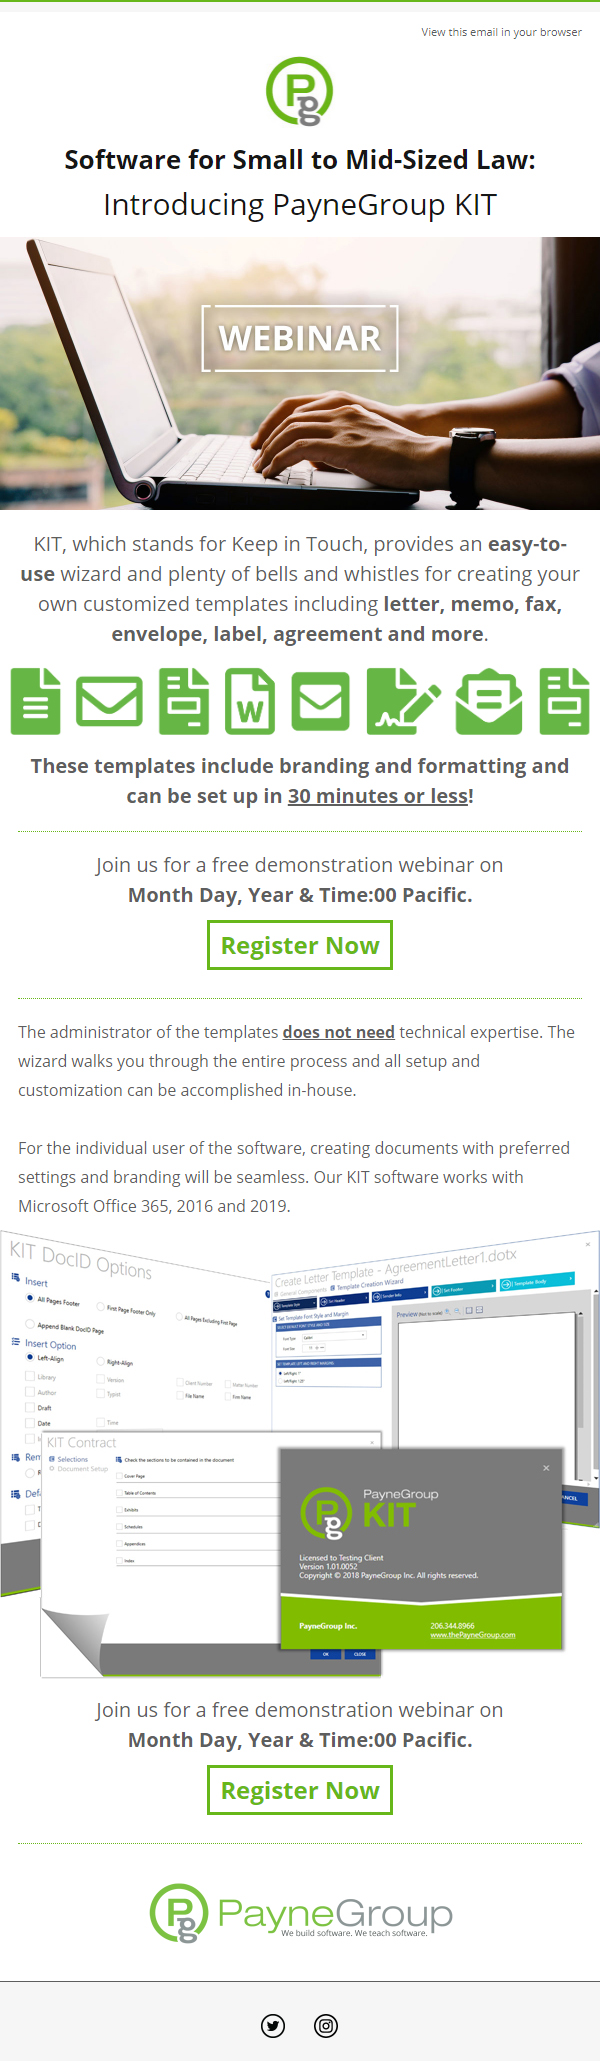 PayneGroup KIT Webinar Email